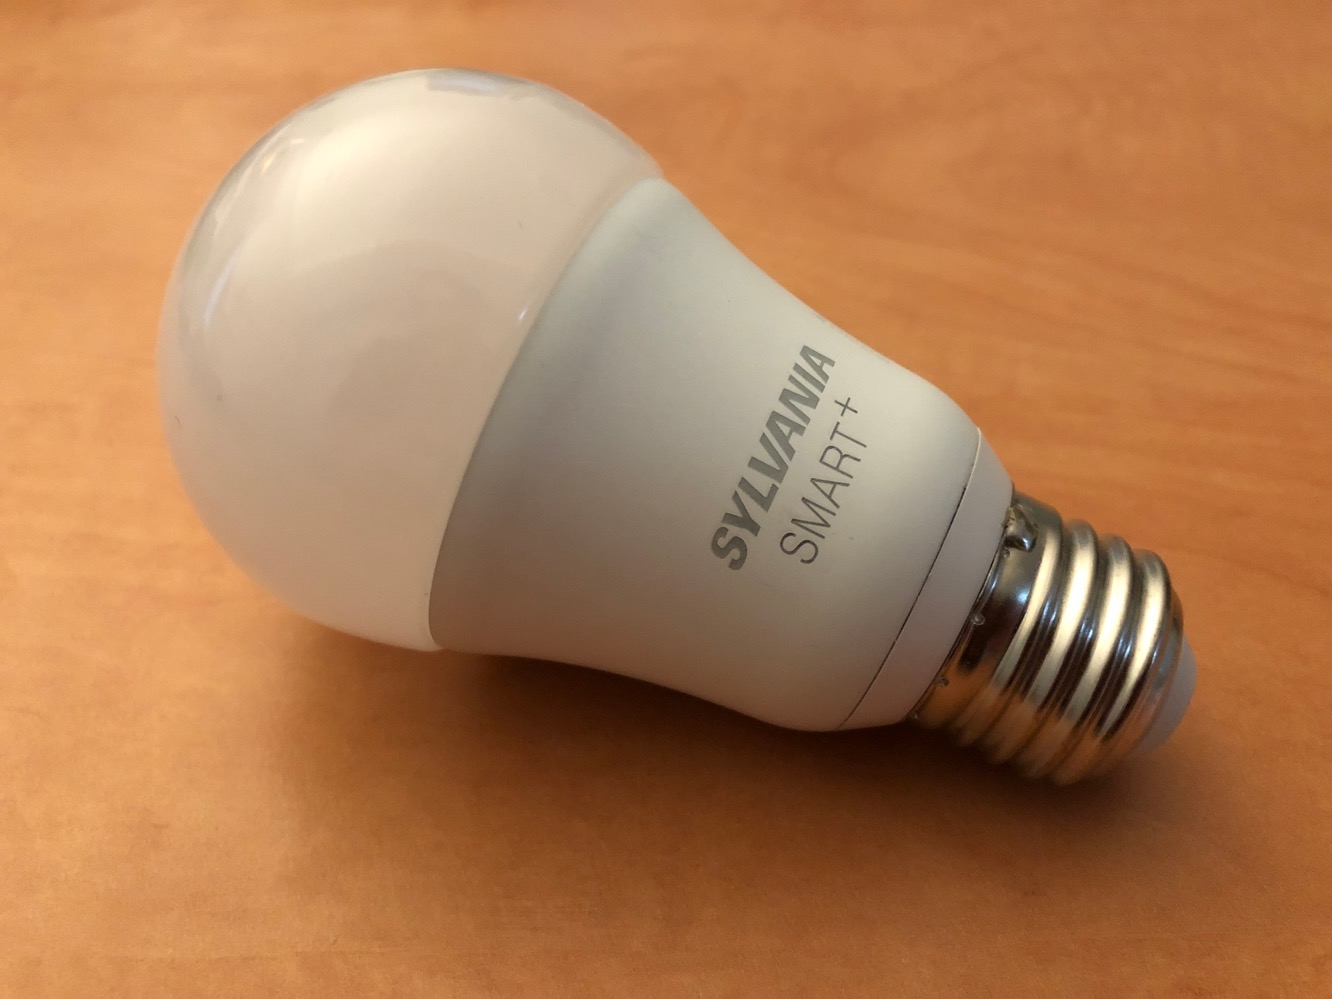 Review sylvania smart soft white led light bulb full color led the full color led flex strip provides the same colour capabilities and white colour temperatures as the full color led light bulb but only puts out 400 mozeypictures Gallery